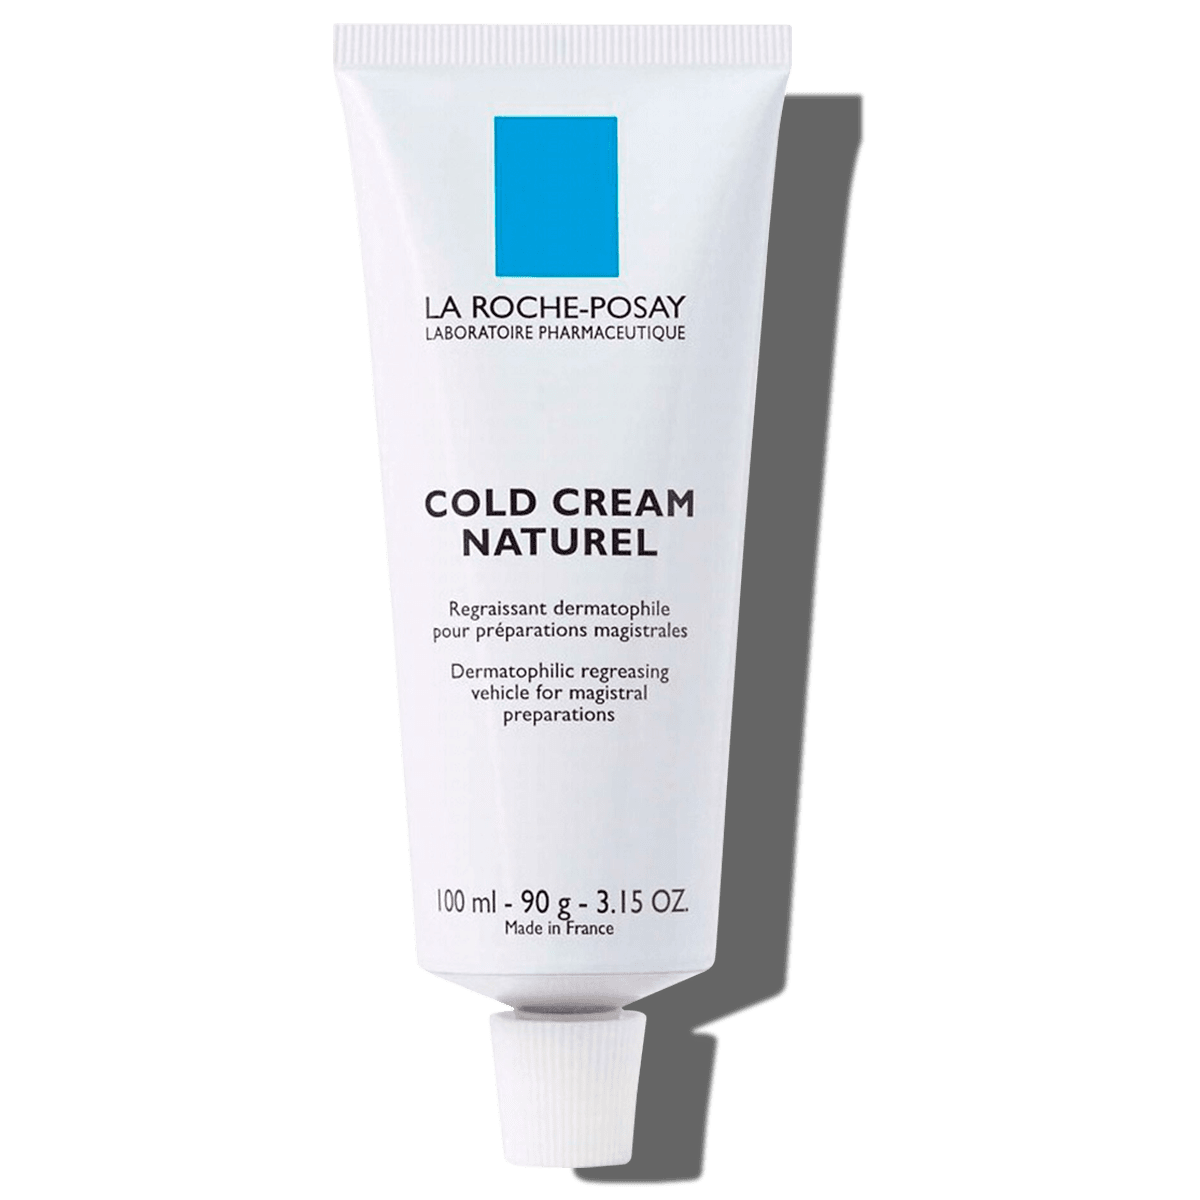 LA ROCHE POSAY Cold cream naturel 12734_2_1458921913